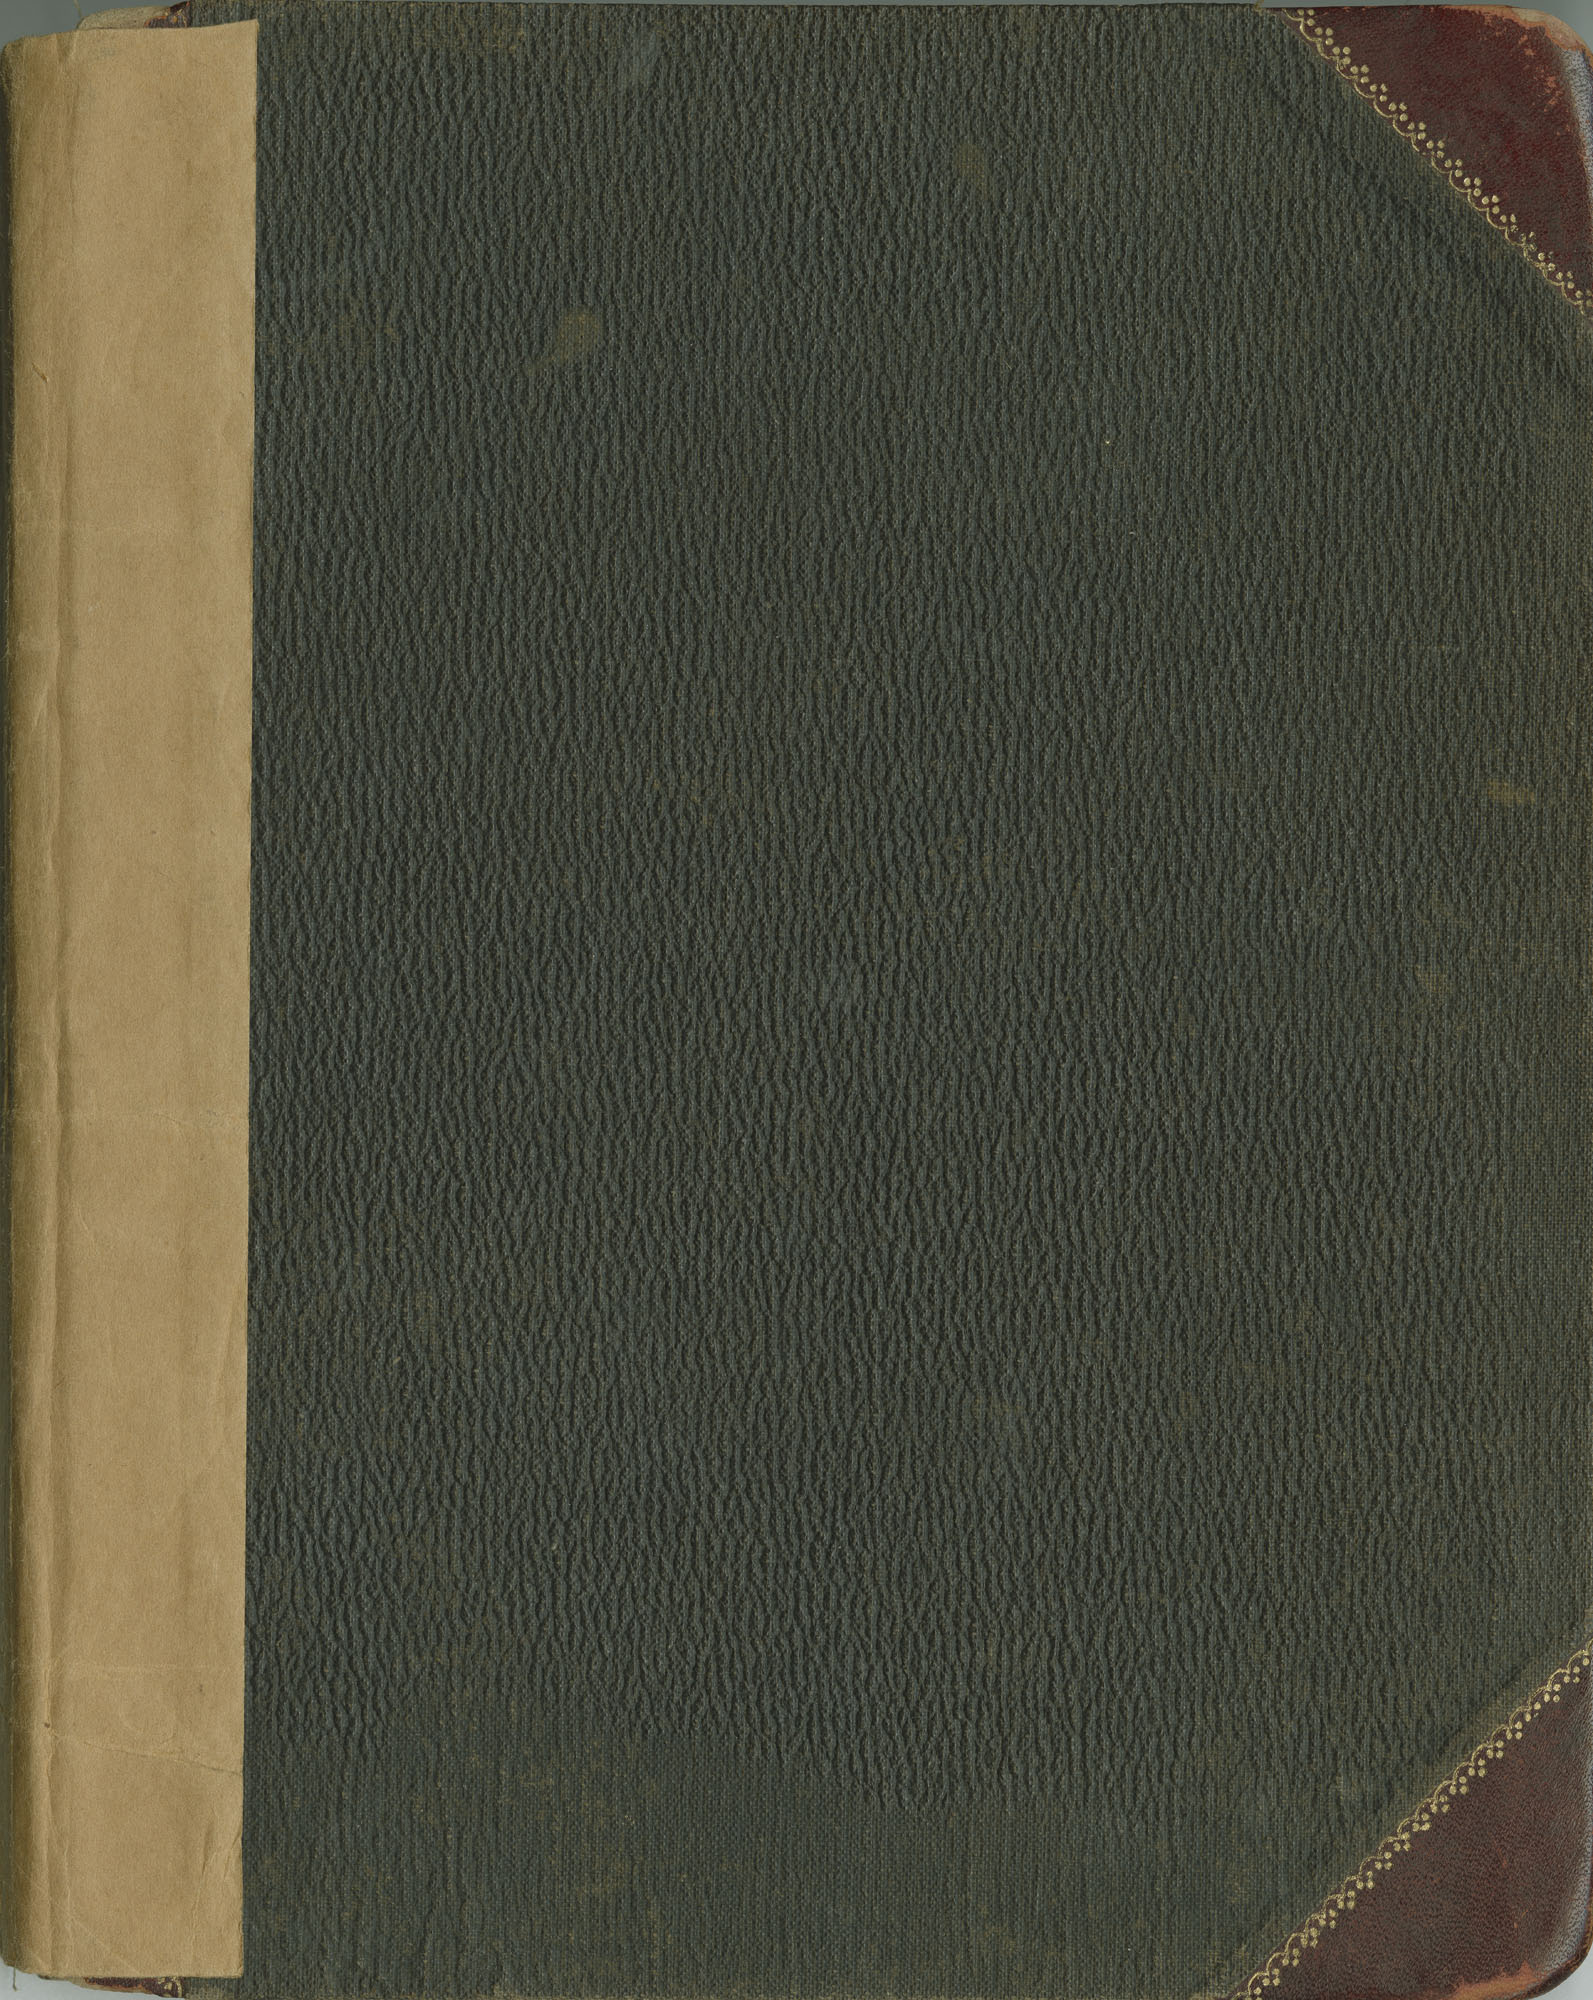 60. Back Cover of Daughters of Century Society and Brown Fellowship Society Account Book and Minutes, 1904-1975.